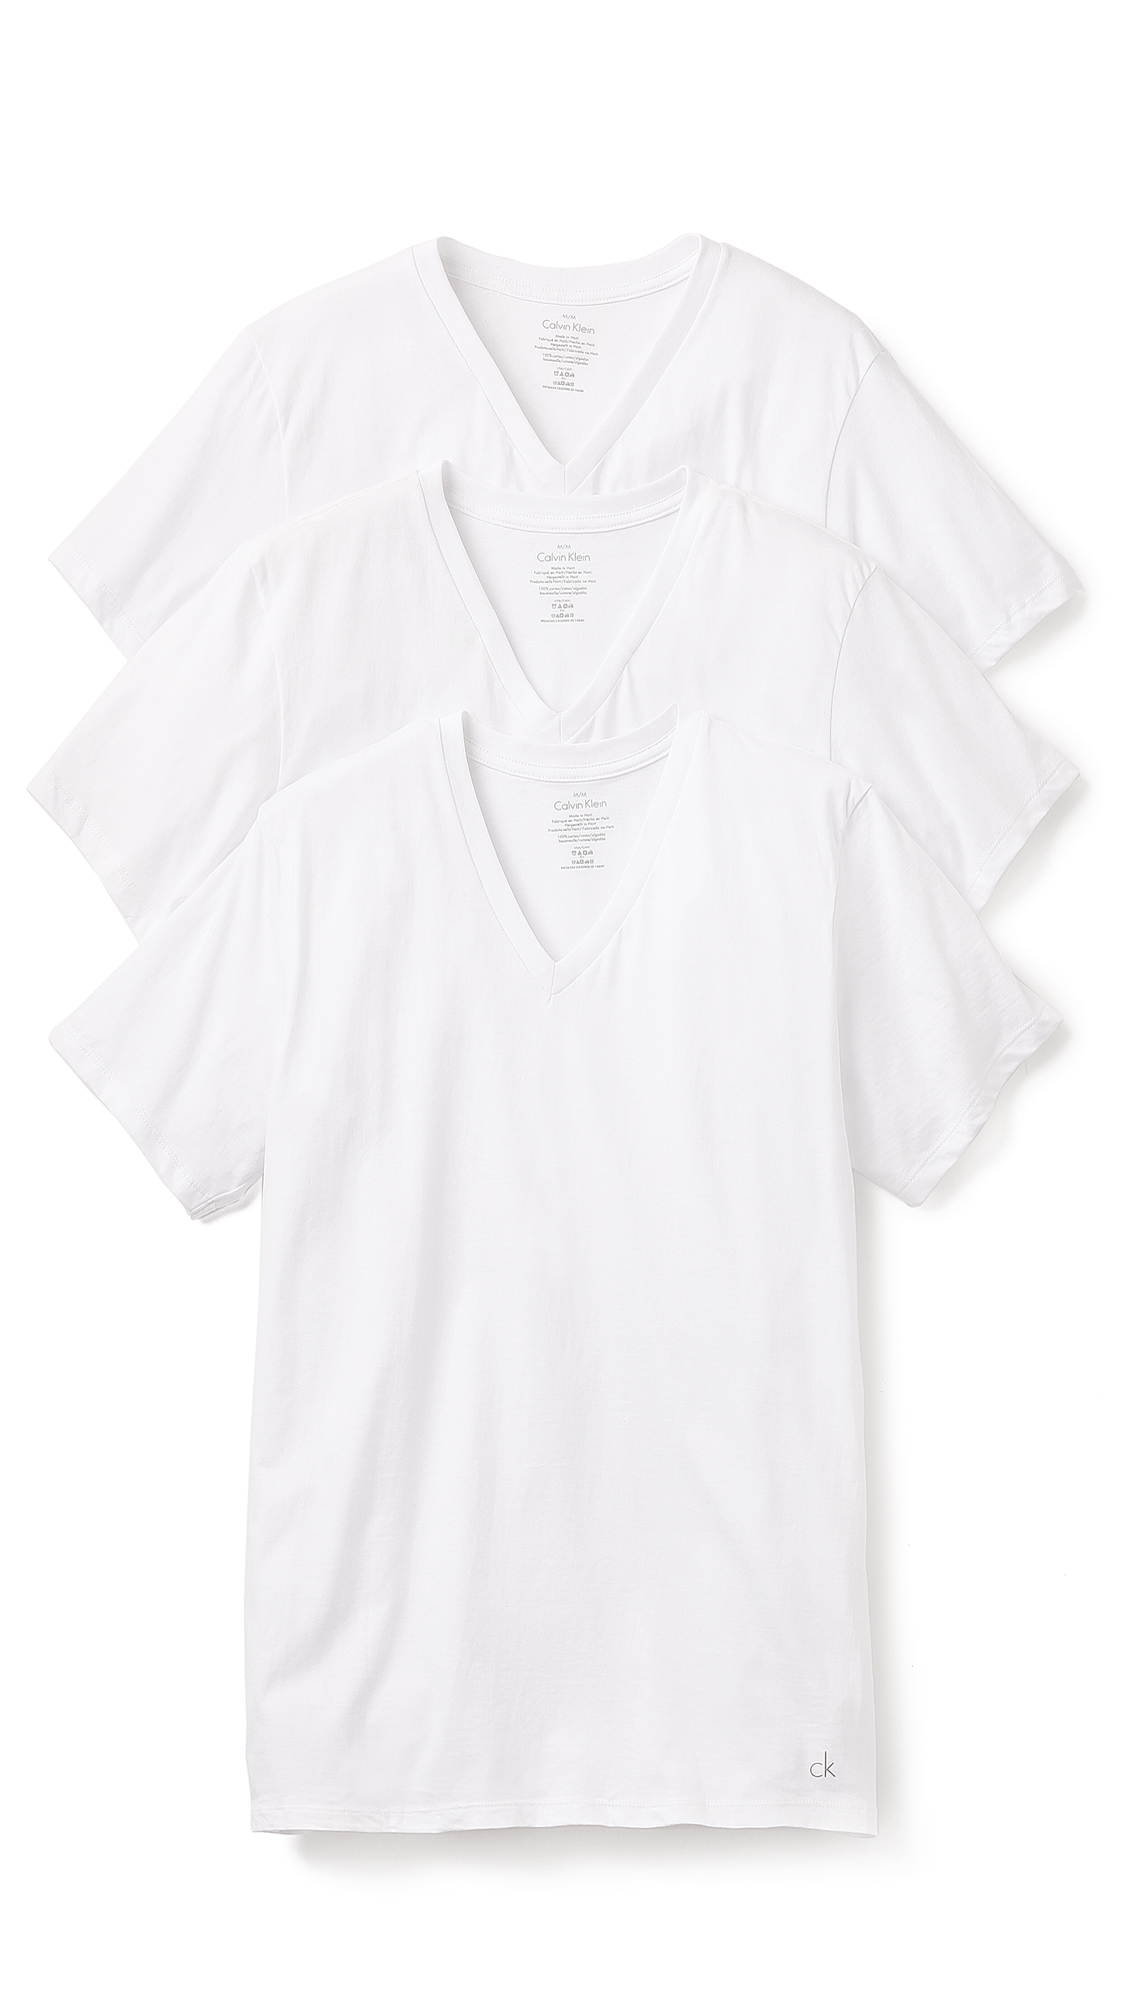 Calvin Klein 3 Pack Cotton Classic V Neck T Shirts In